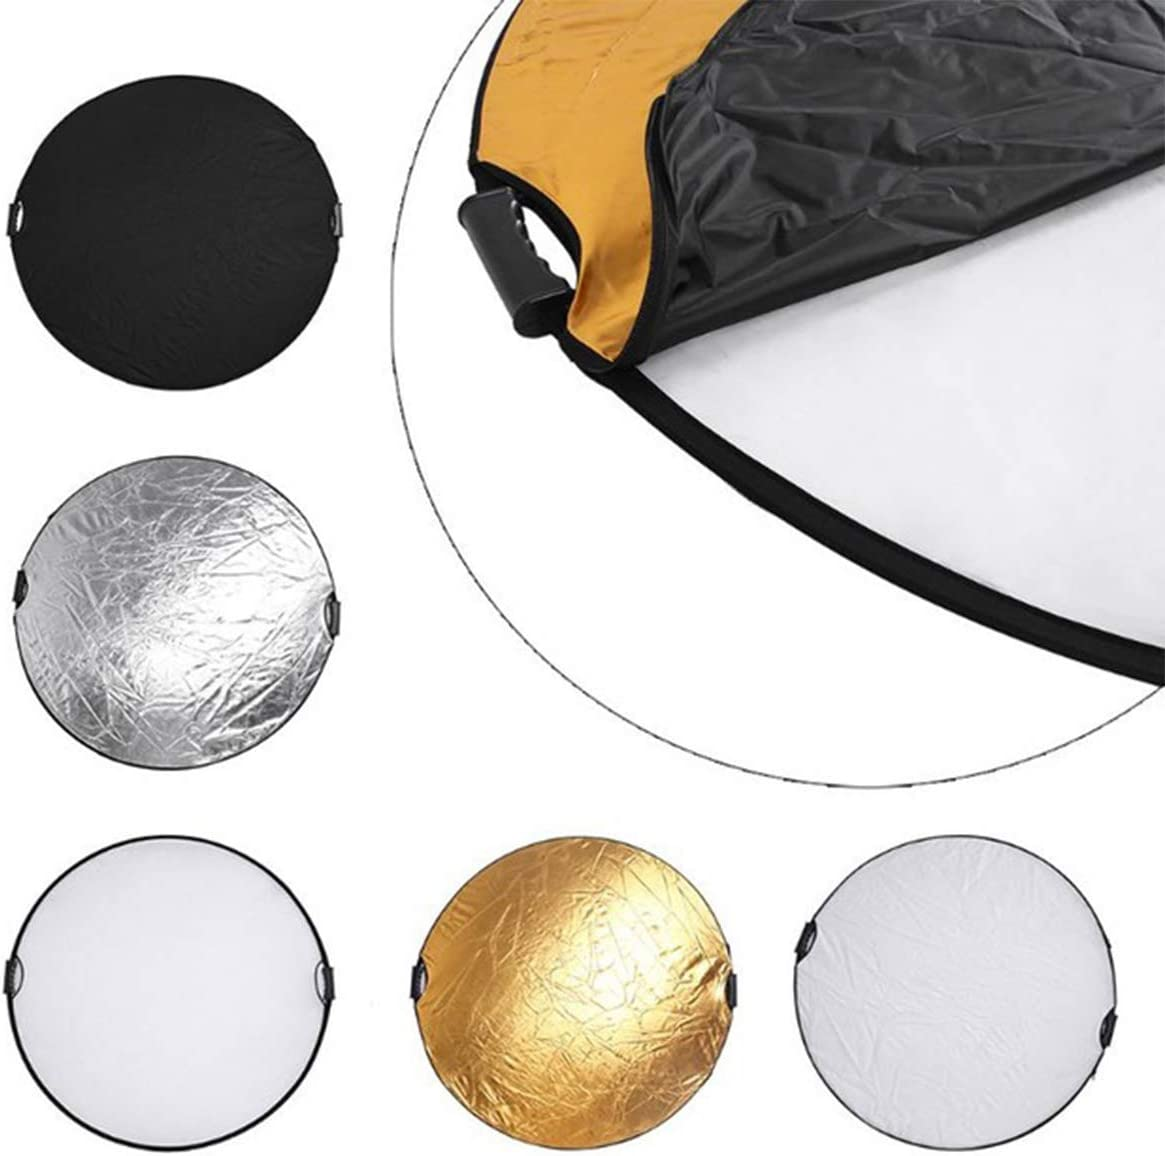 for Photography Photo Studio Golden//Silver//Black//White//Translucent 5 in 1 Round Collapsible Disc Light Reflector with Handle 60cm//24